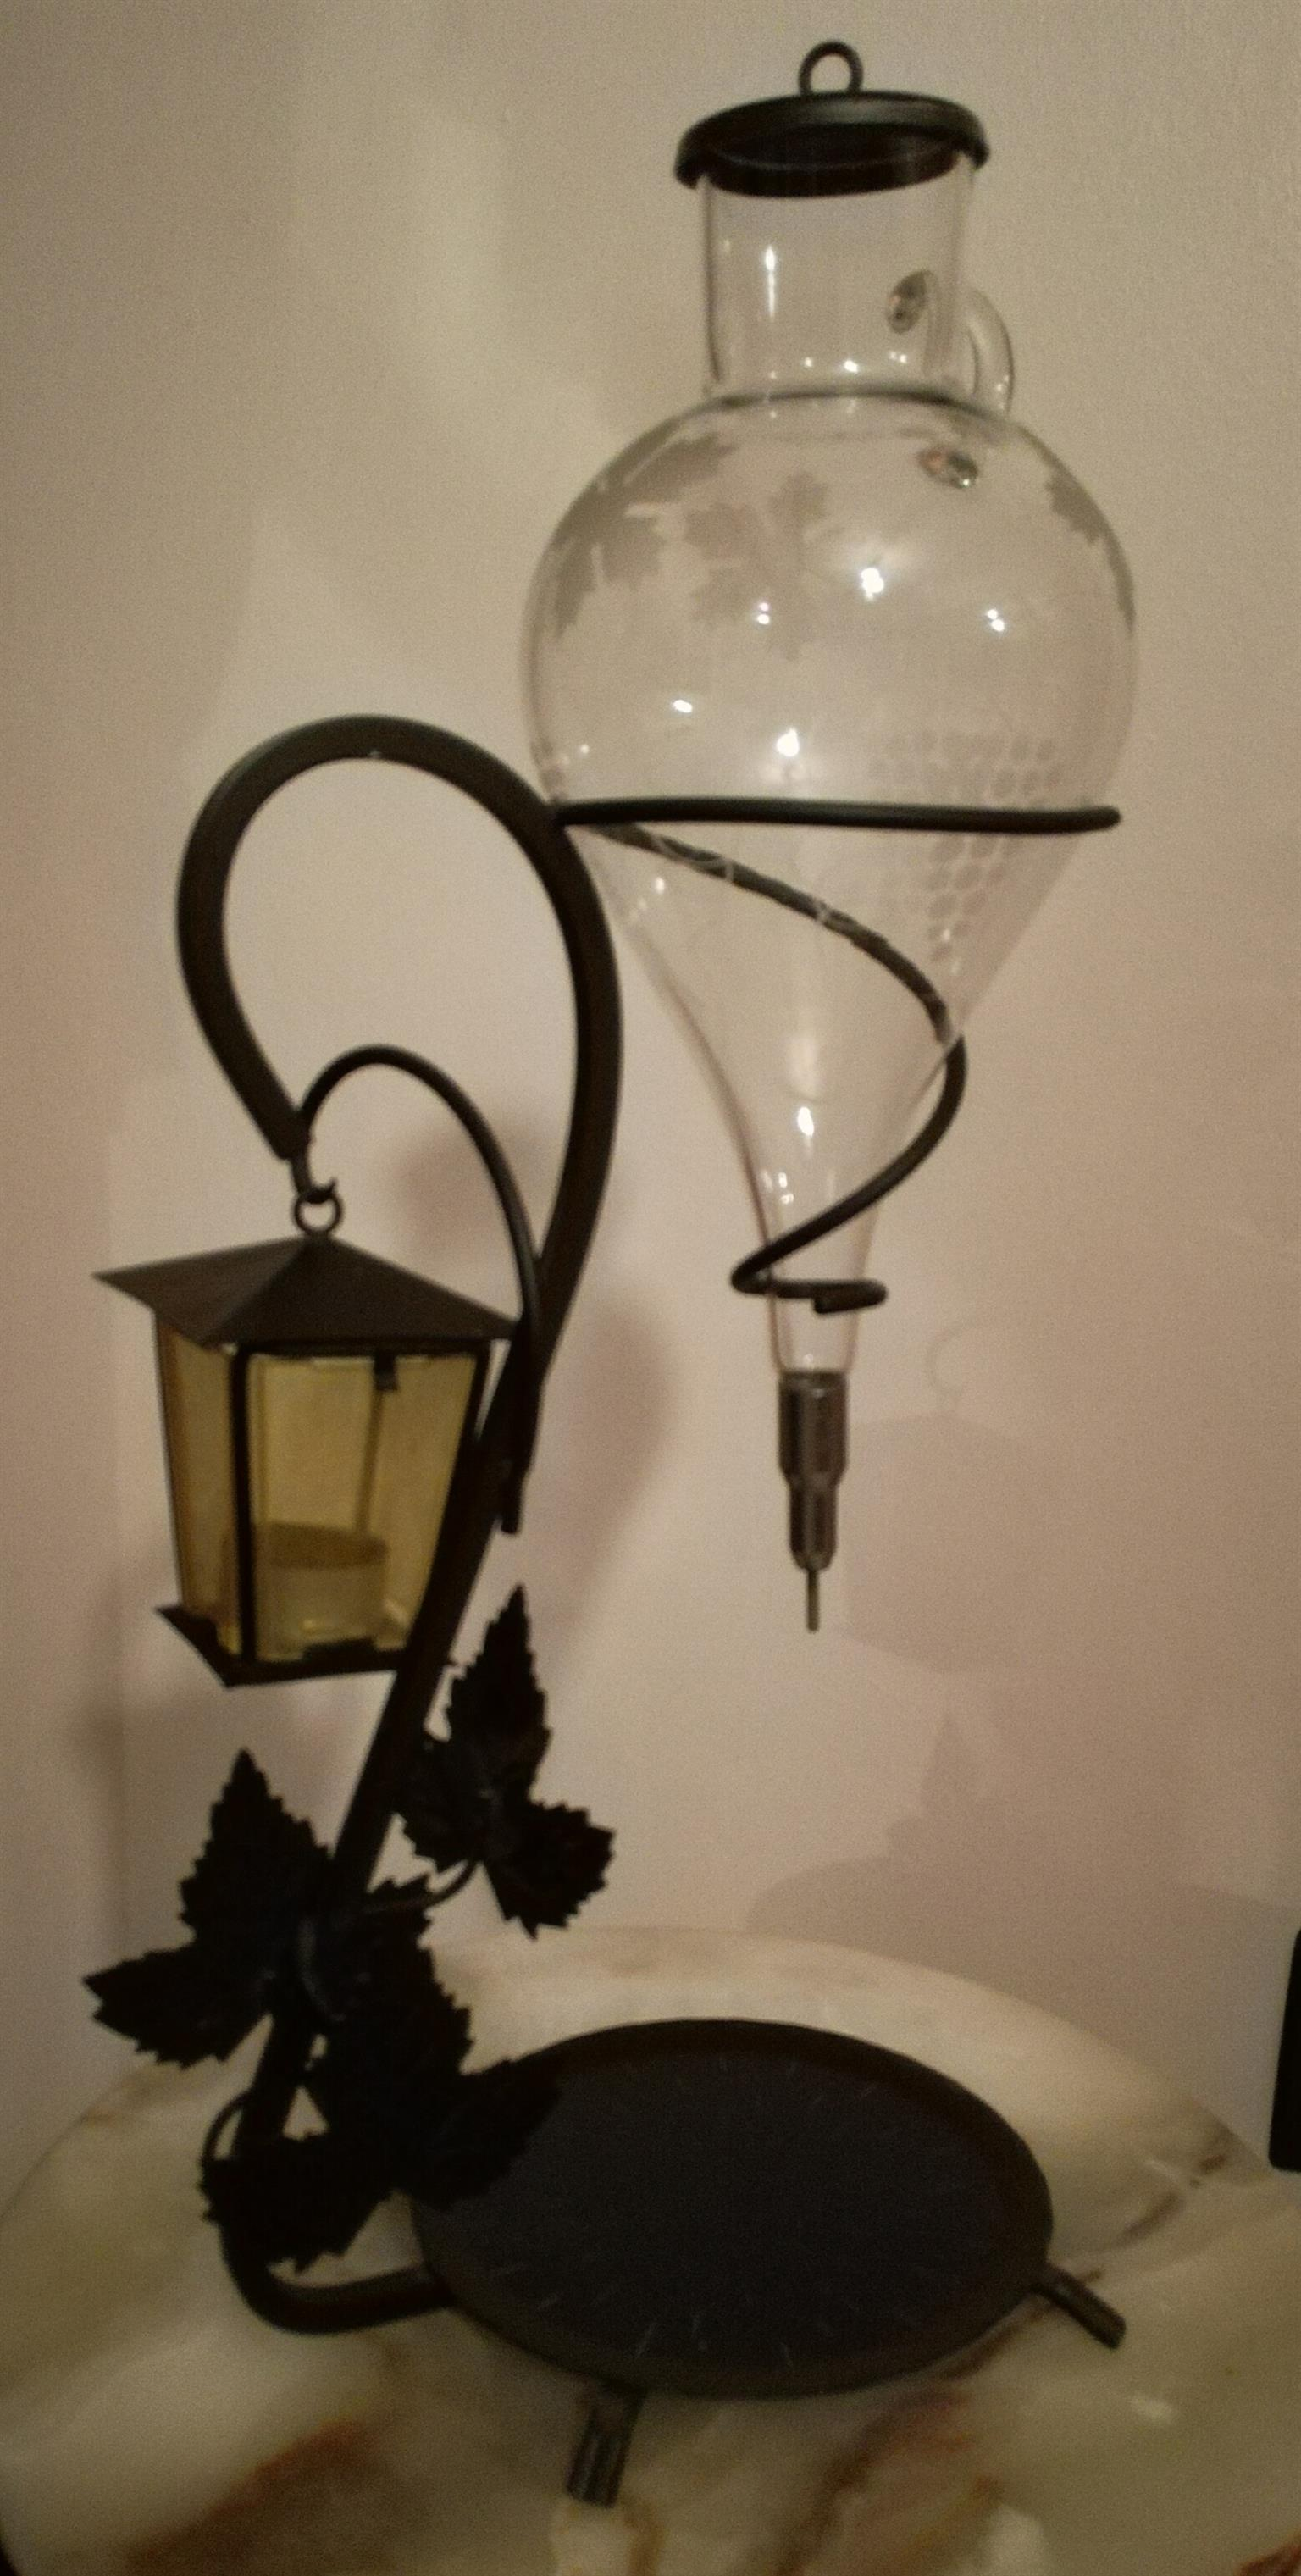 Charming rare Vintage Vine Dispenser with Lantern on wrought iron base, Leaves & Grapes Design